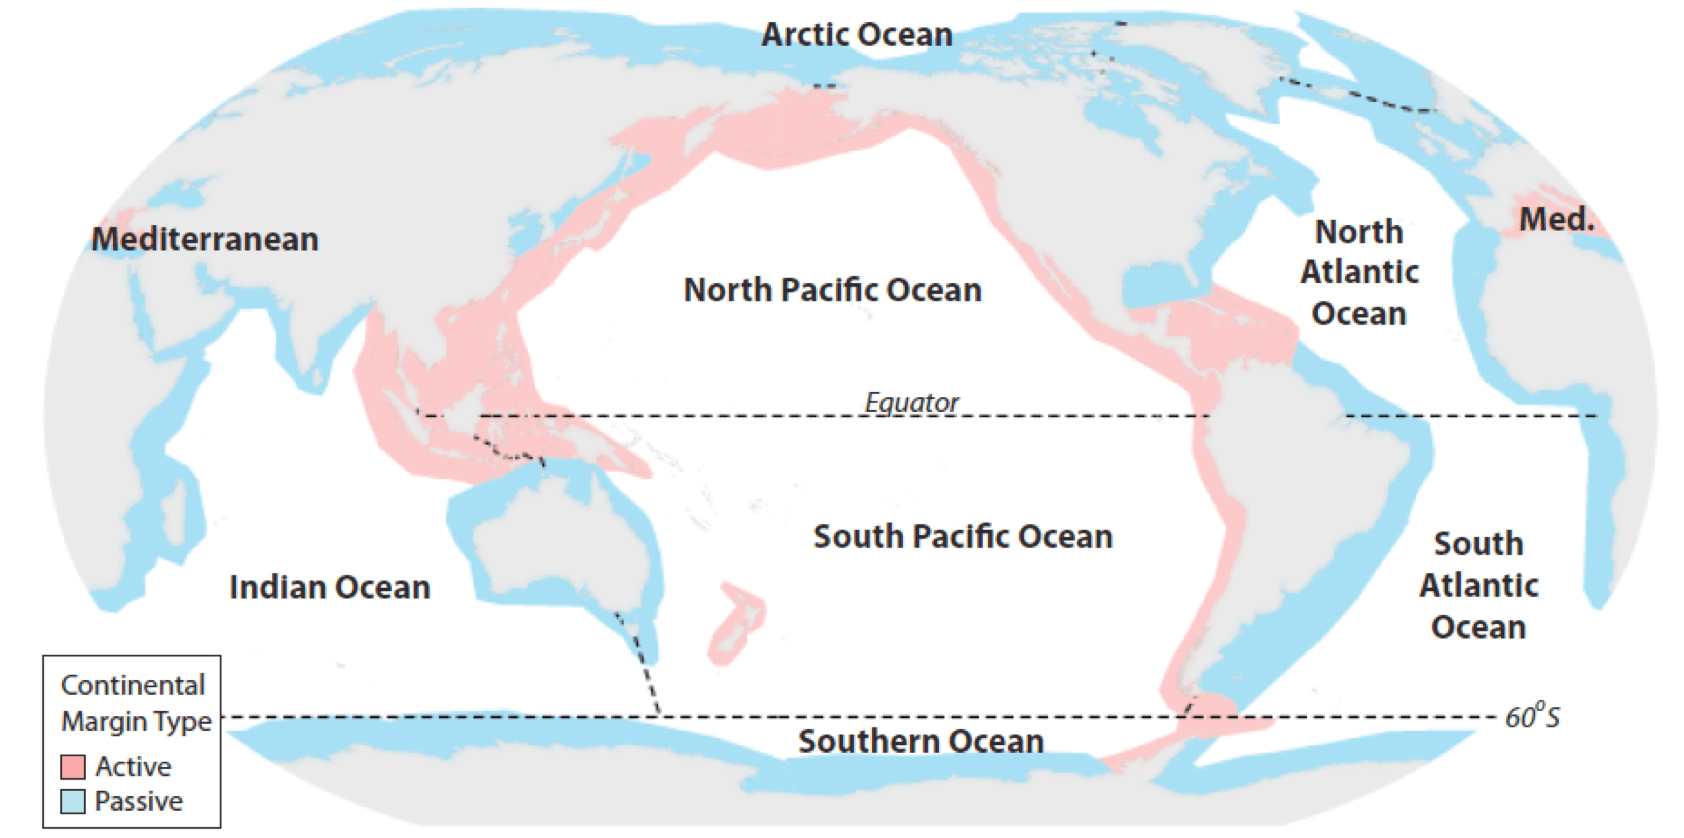 Continental shelf blue habitats map showing the locations of active and passive continental margins and the eight ocean regions described in the text gumiabroncs Choice Image